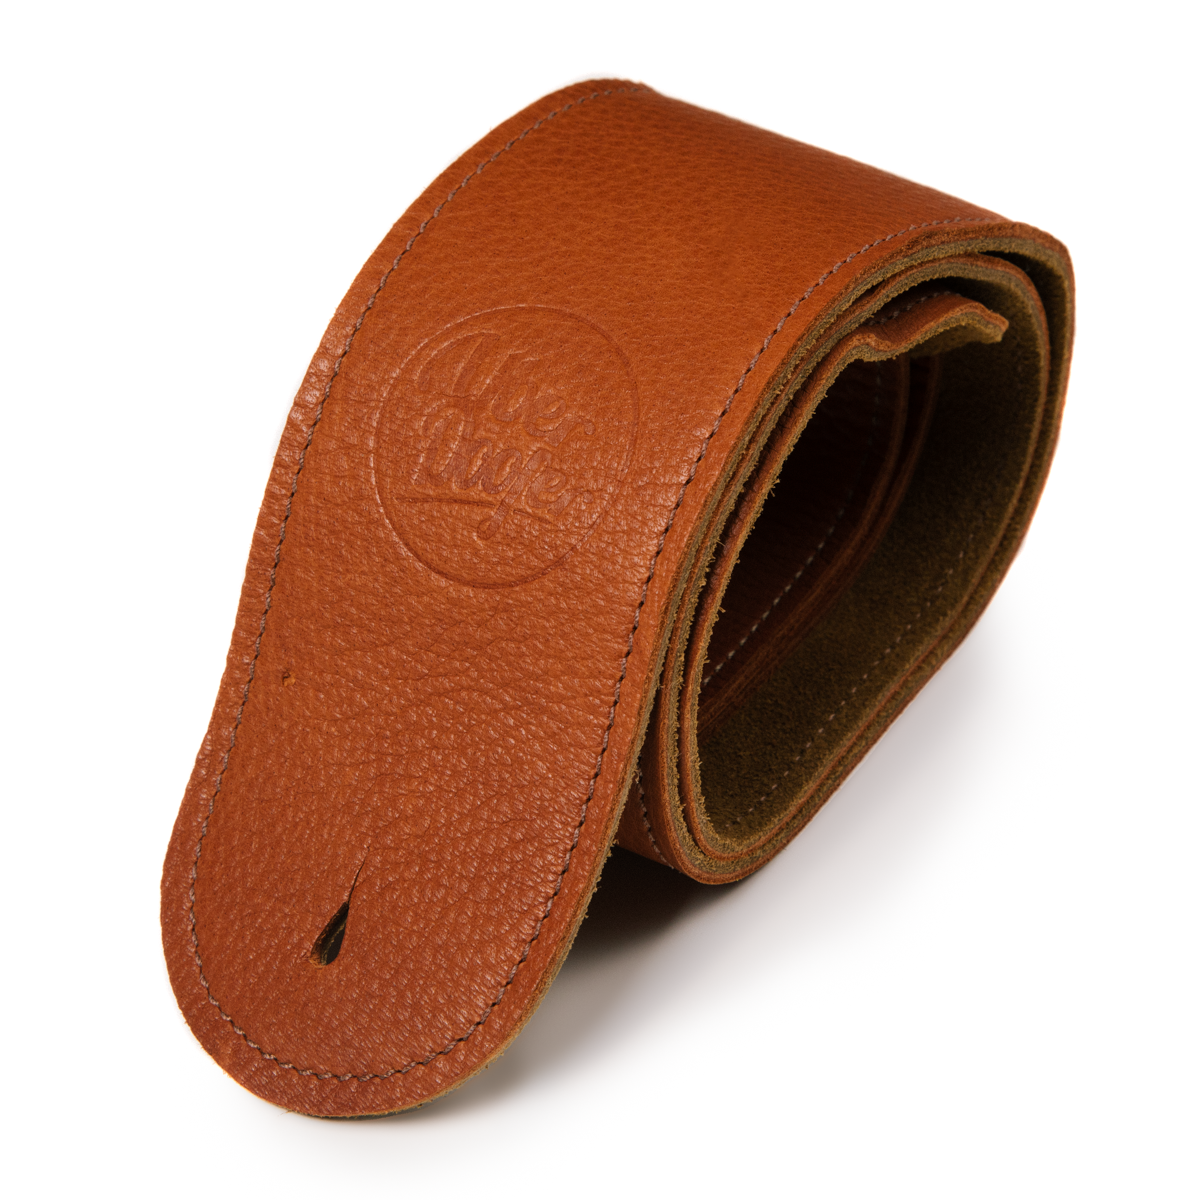 Millington tan deer limited edition premium quality leather guitar straps from Uber Doofer